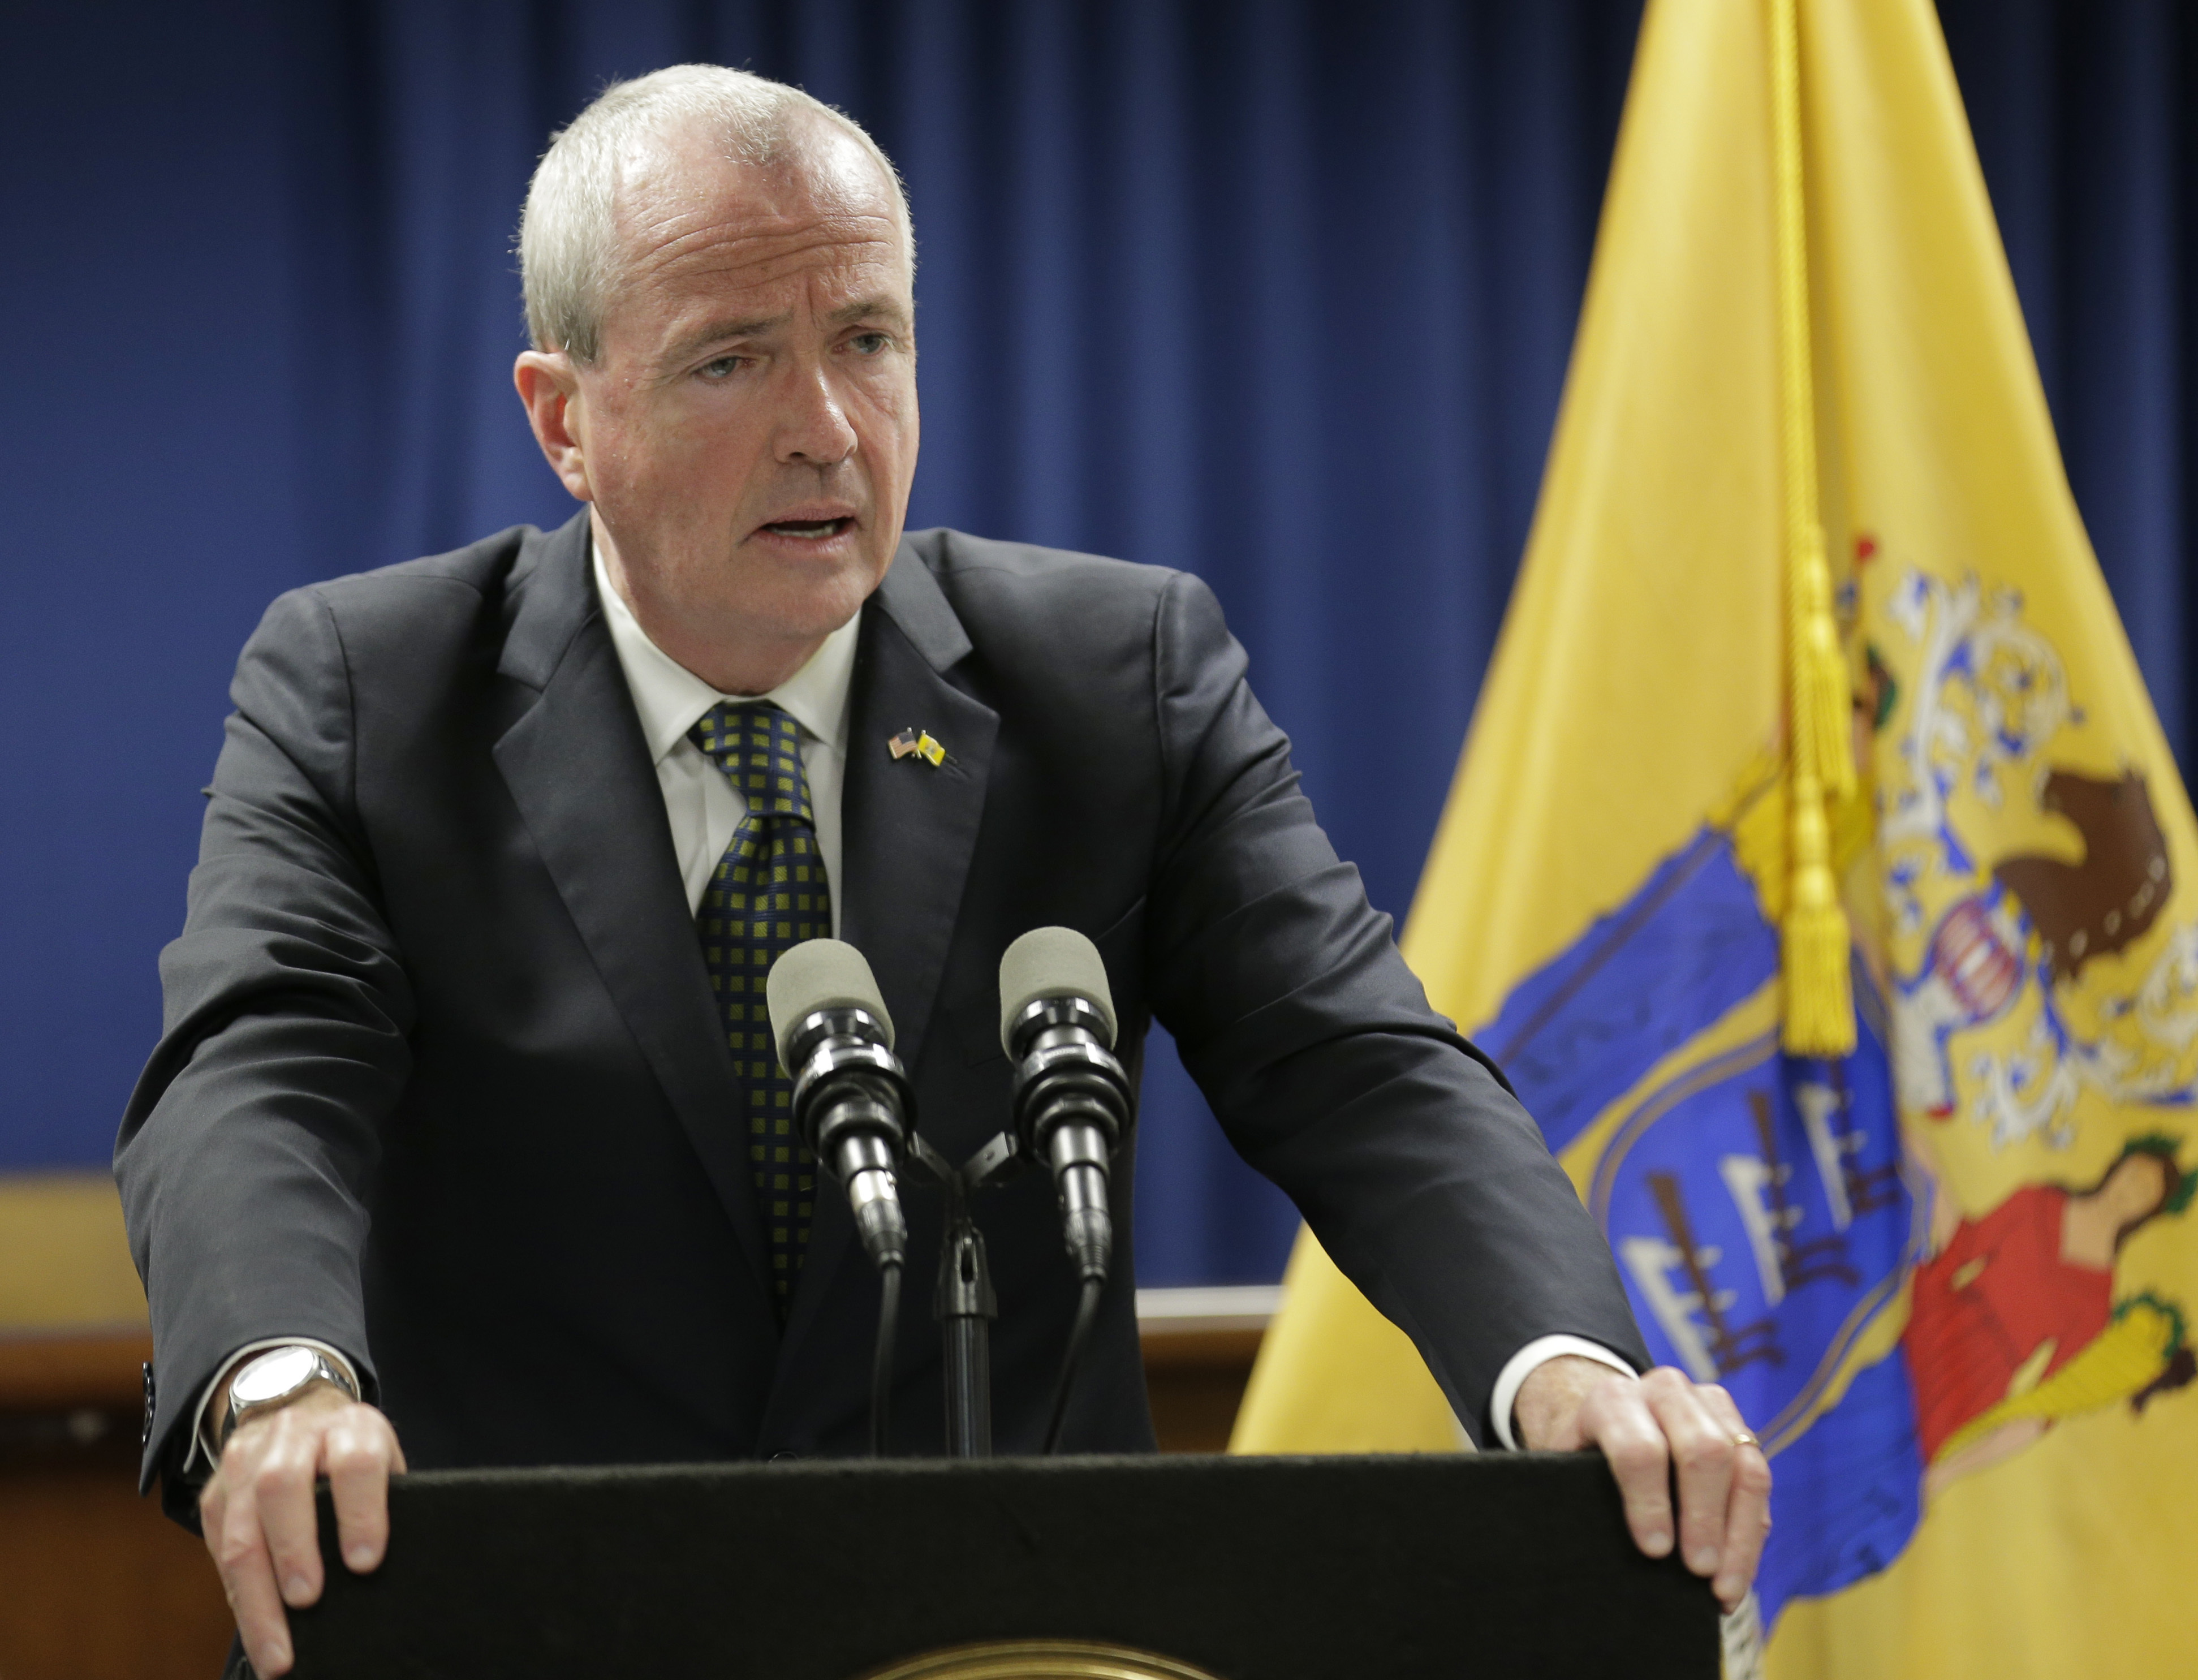 New Jersey Gov. Phil Murphy speaks to reporters in Newark, N.J., Monday, Oct. 15, 2018. A New Jersey state employee said Sunday she was sexually assaulted by a man who went on to work in Democratic Gov. Phil Murphy´s administration and tried for a year to get authorities to take action but with no result.